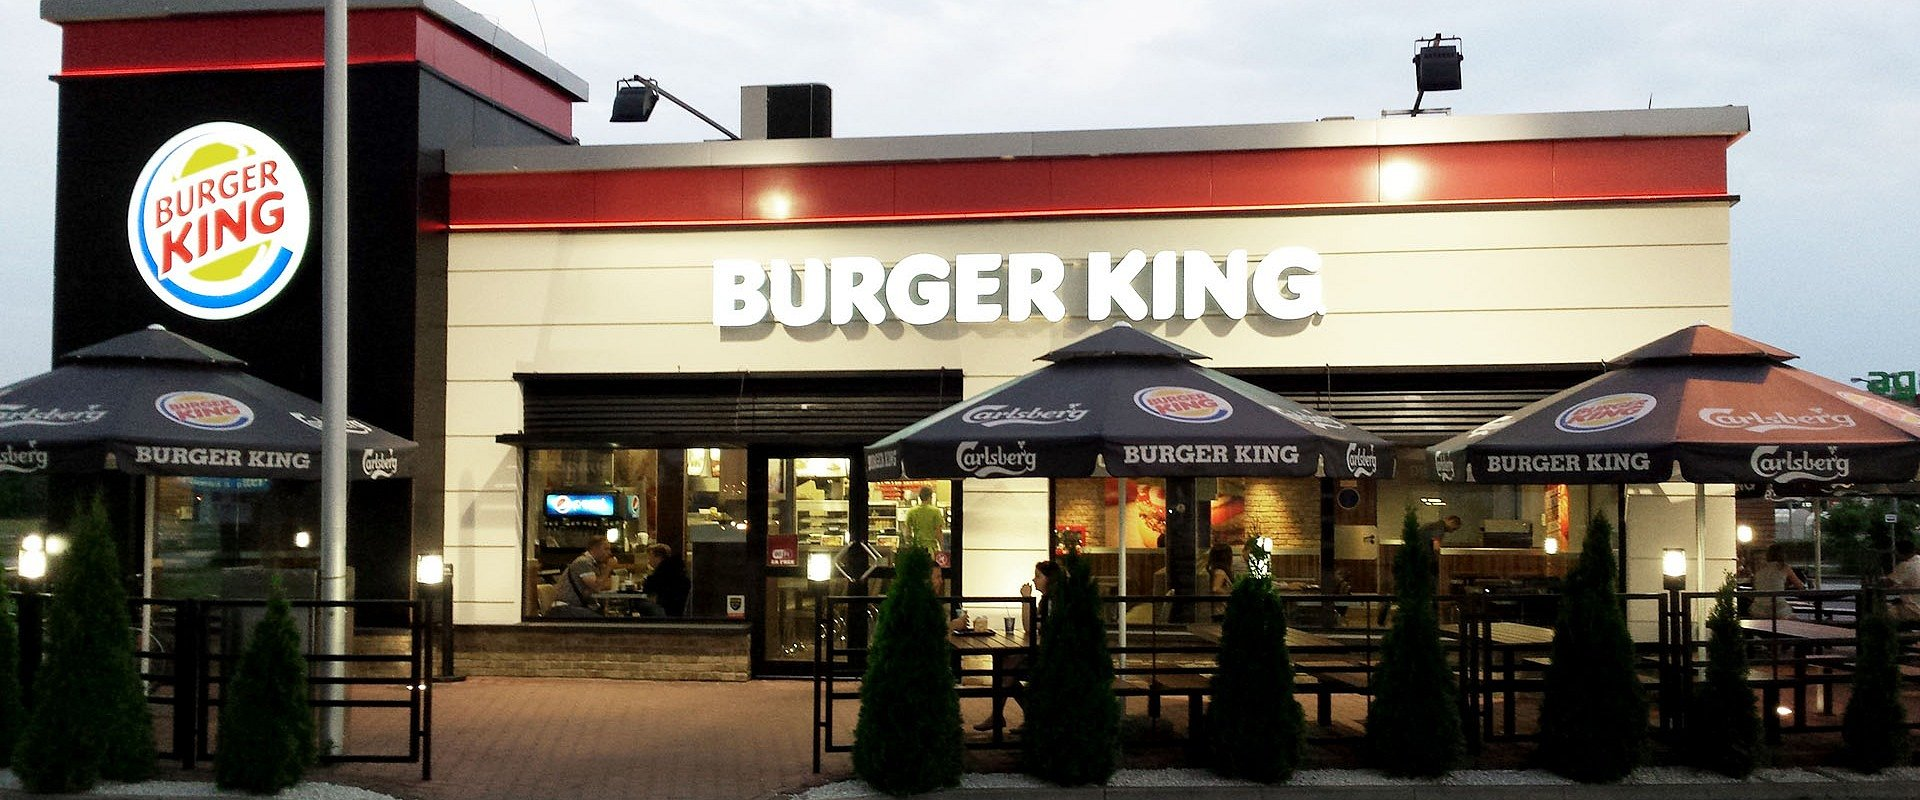 AmRest announces deal to develop the BURGER KING® brand in 5 countries